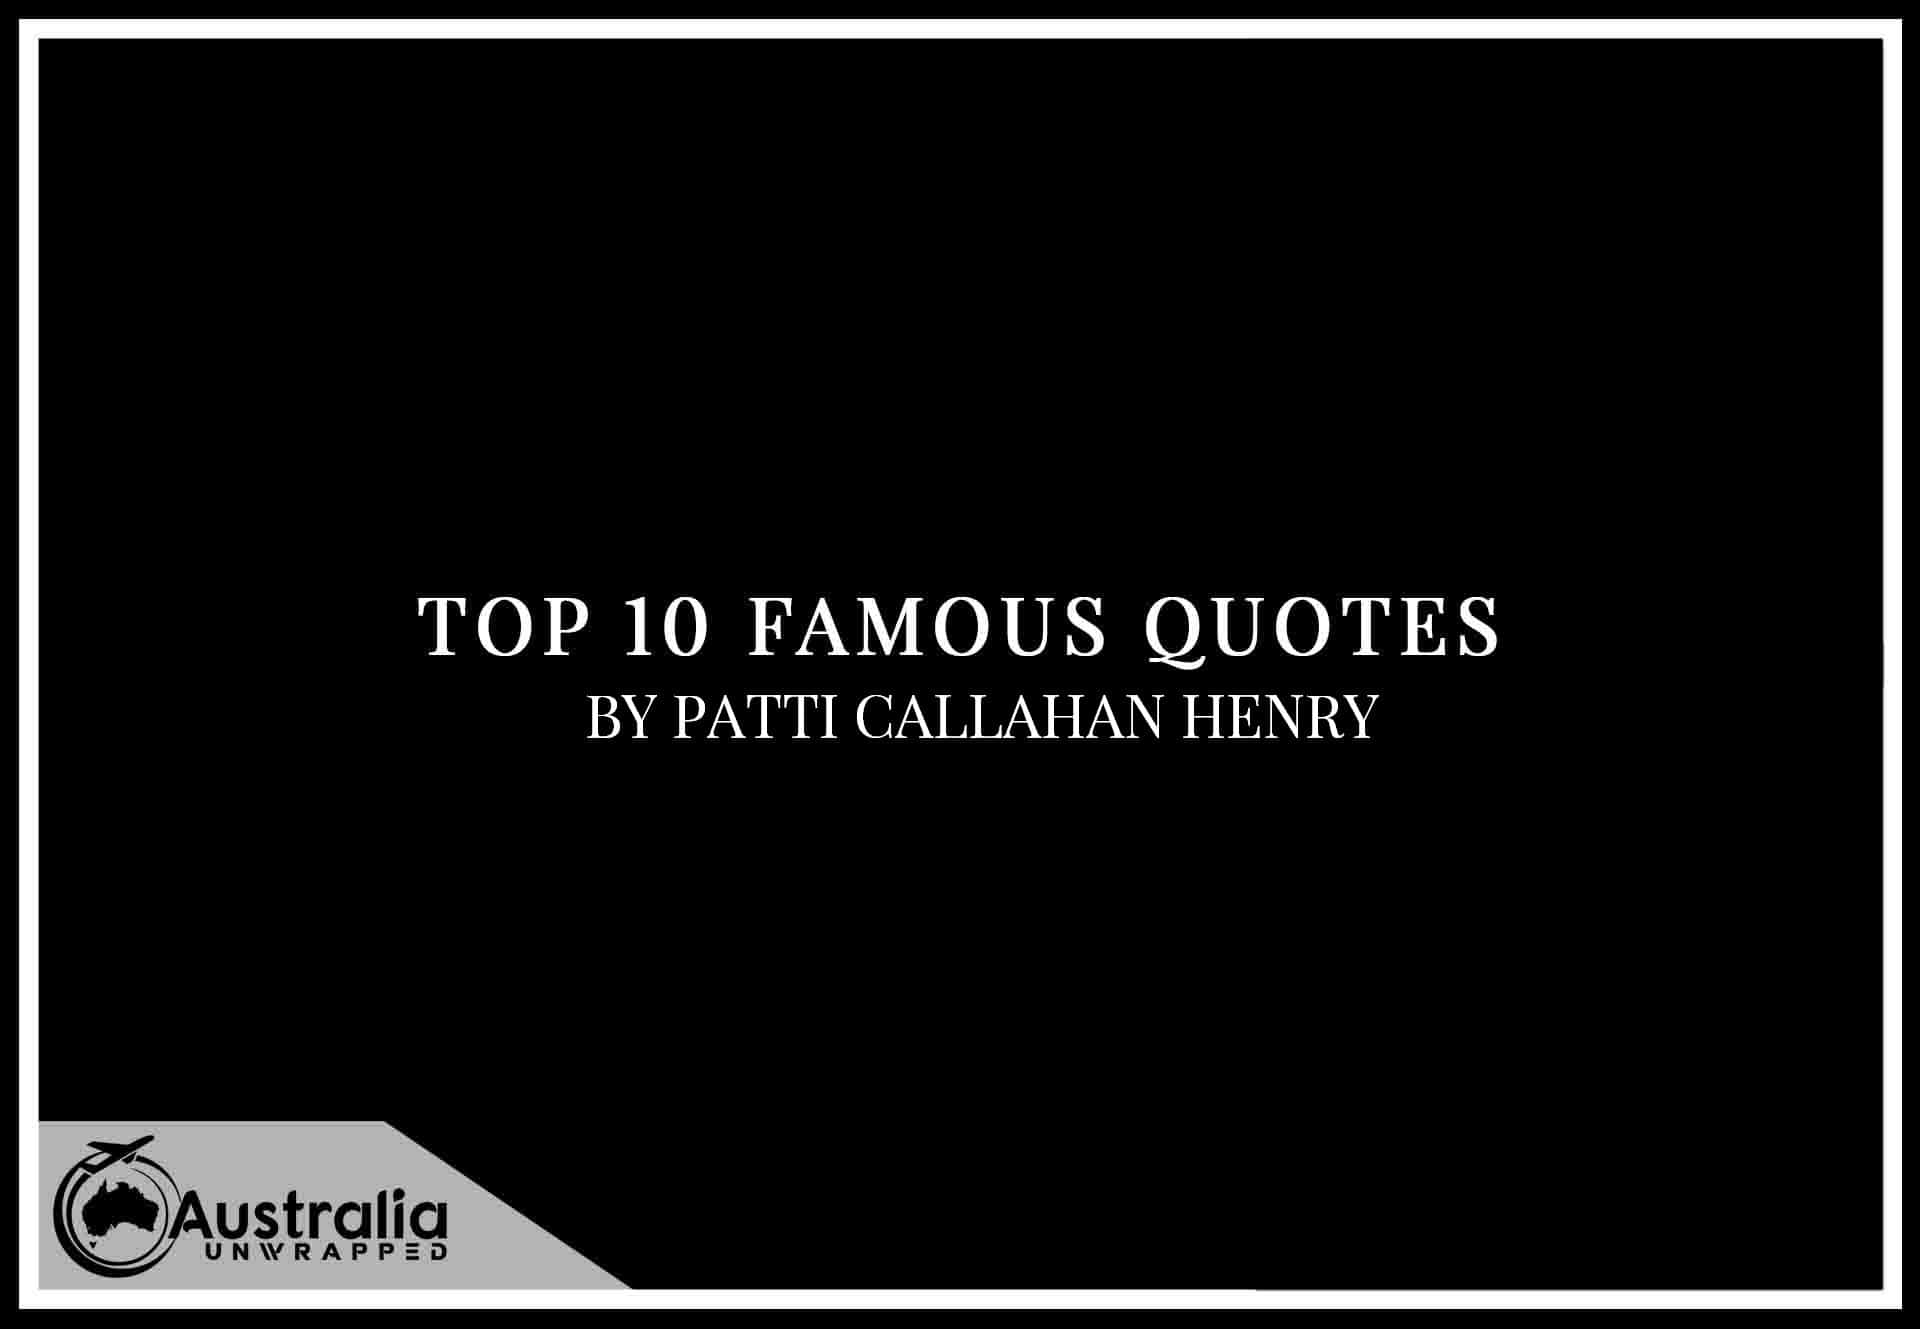 Top 10 Famous Quotes by Author Patti Callahan Henry